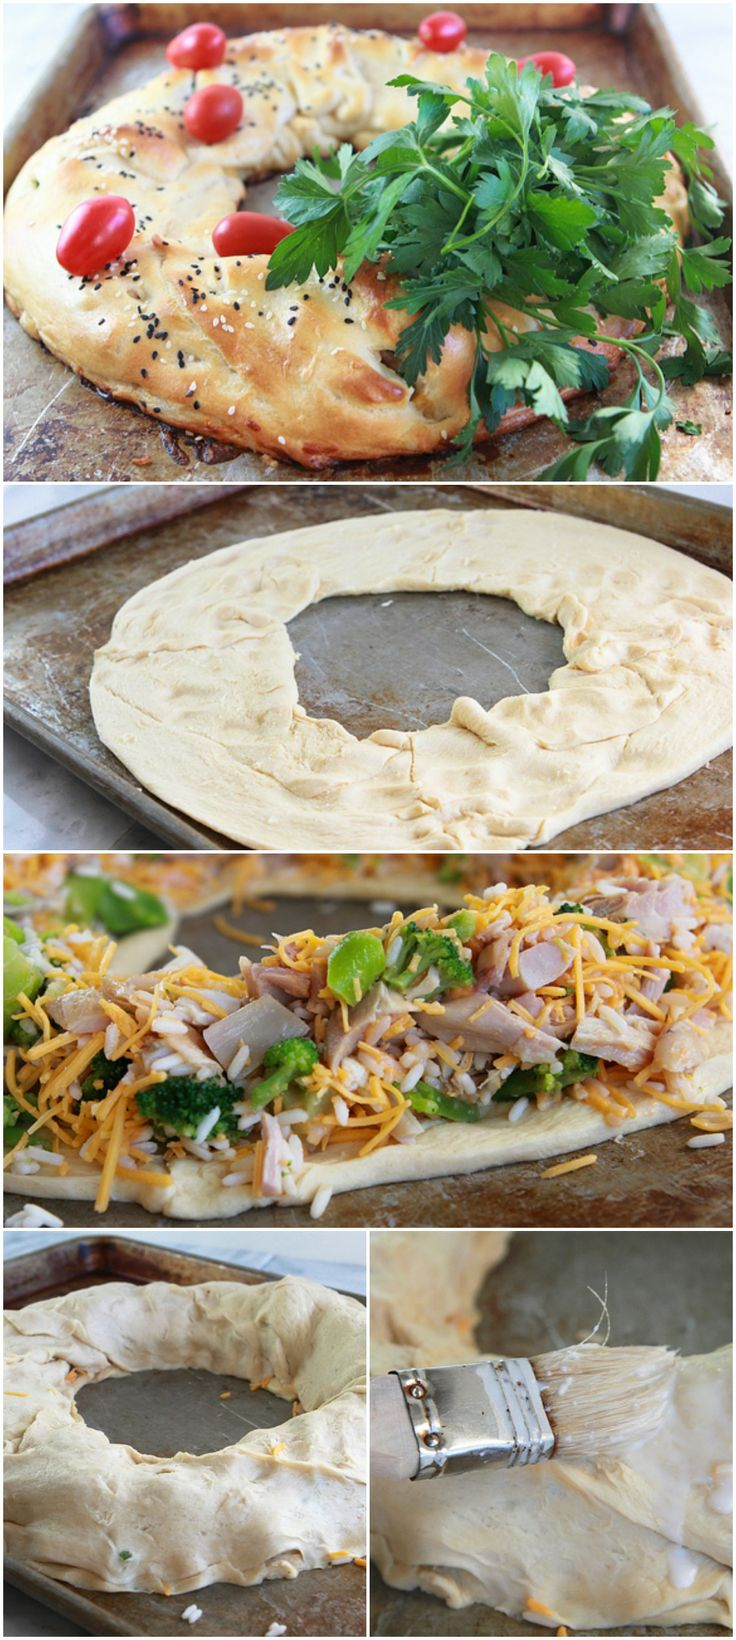 how to make crescent roll wreath